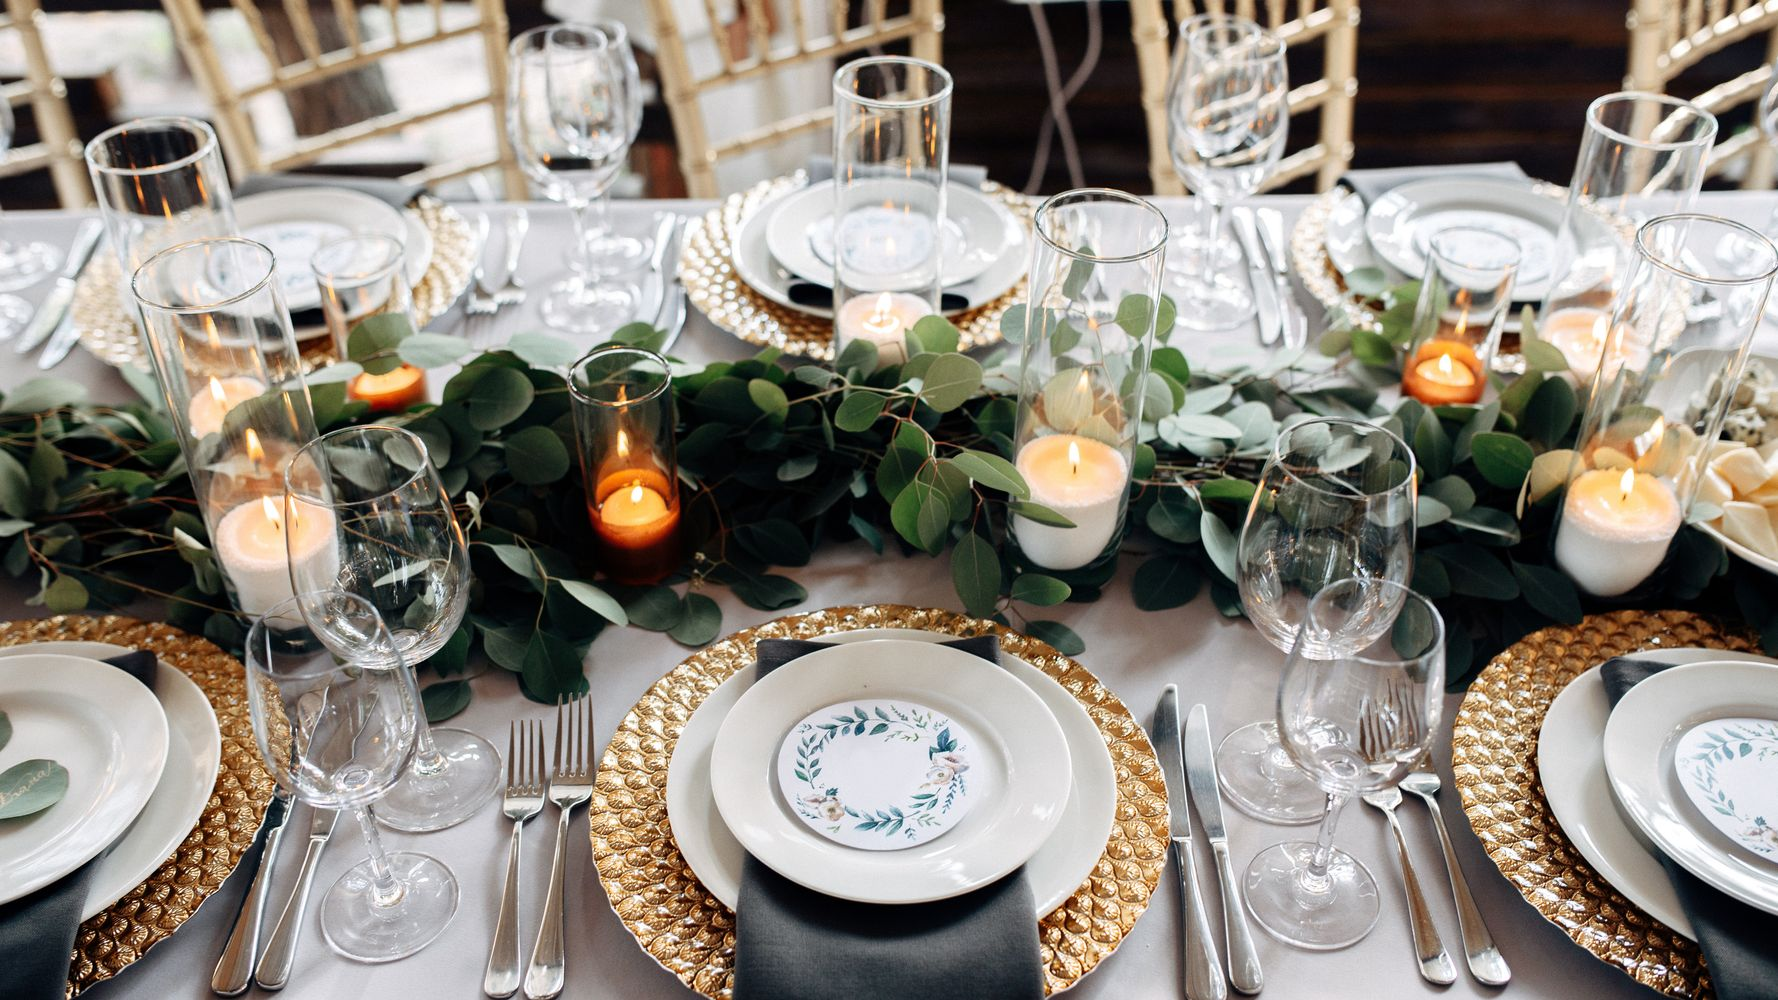 9 Unique Centrepieces And Table Decorations For A DIY Wedding